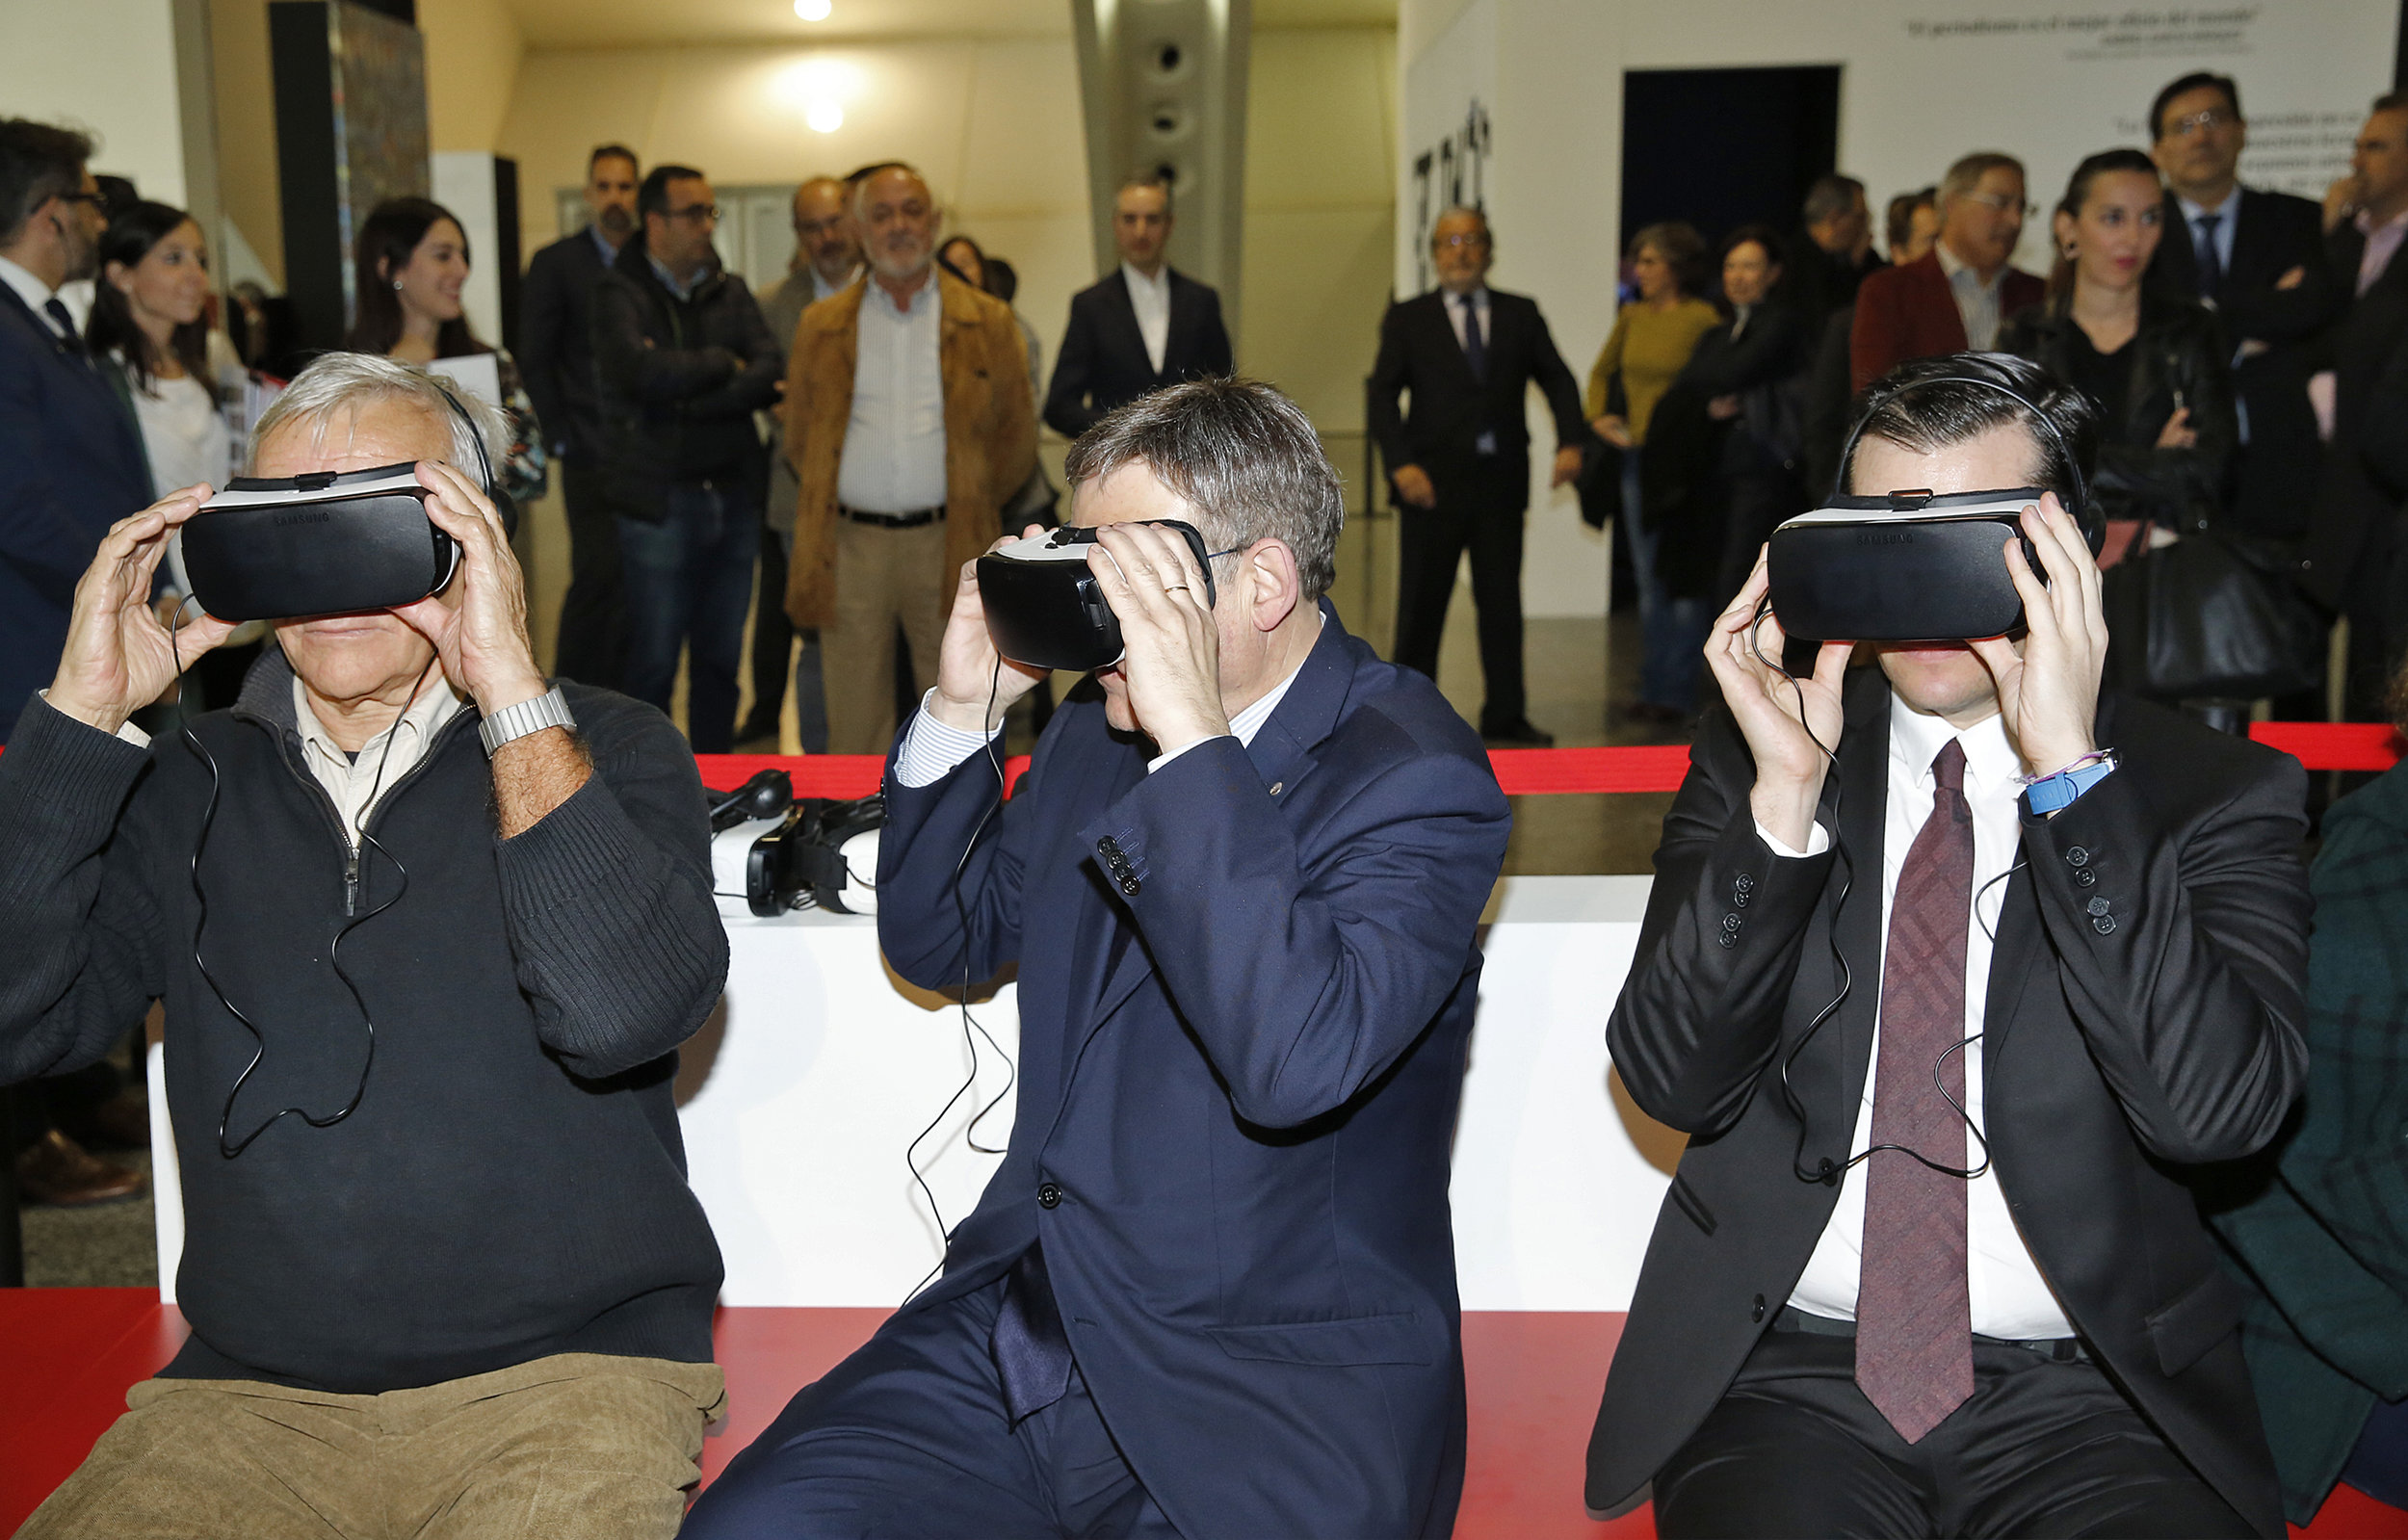 David Alandete with Valencia mayor Joan Ribó and president Ximo Puig at the opening of the El País itinerant exhibition in, 2016.